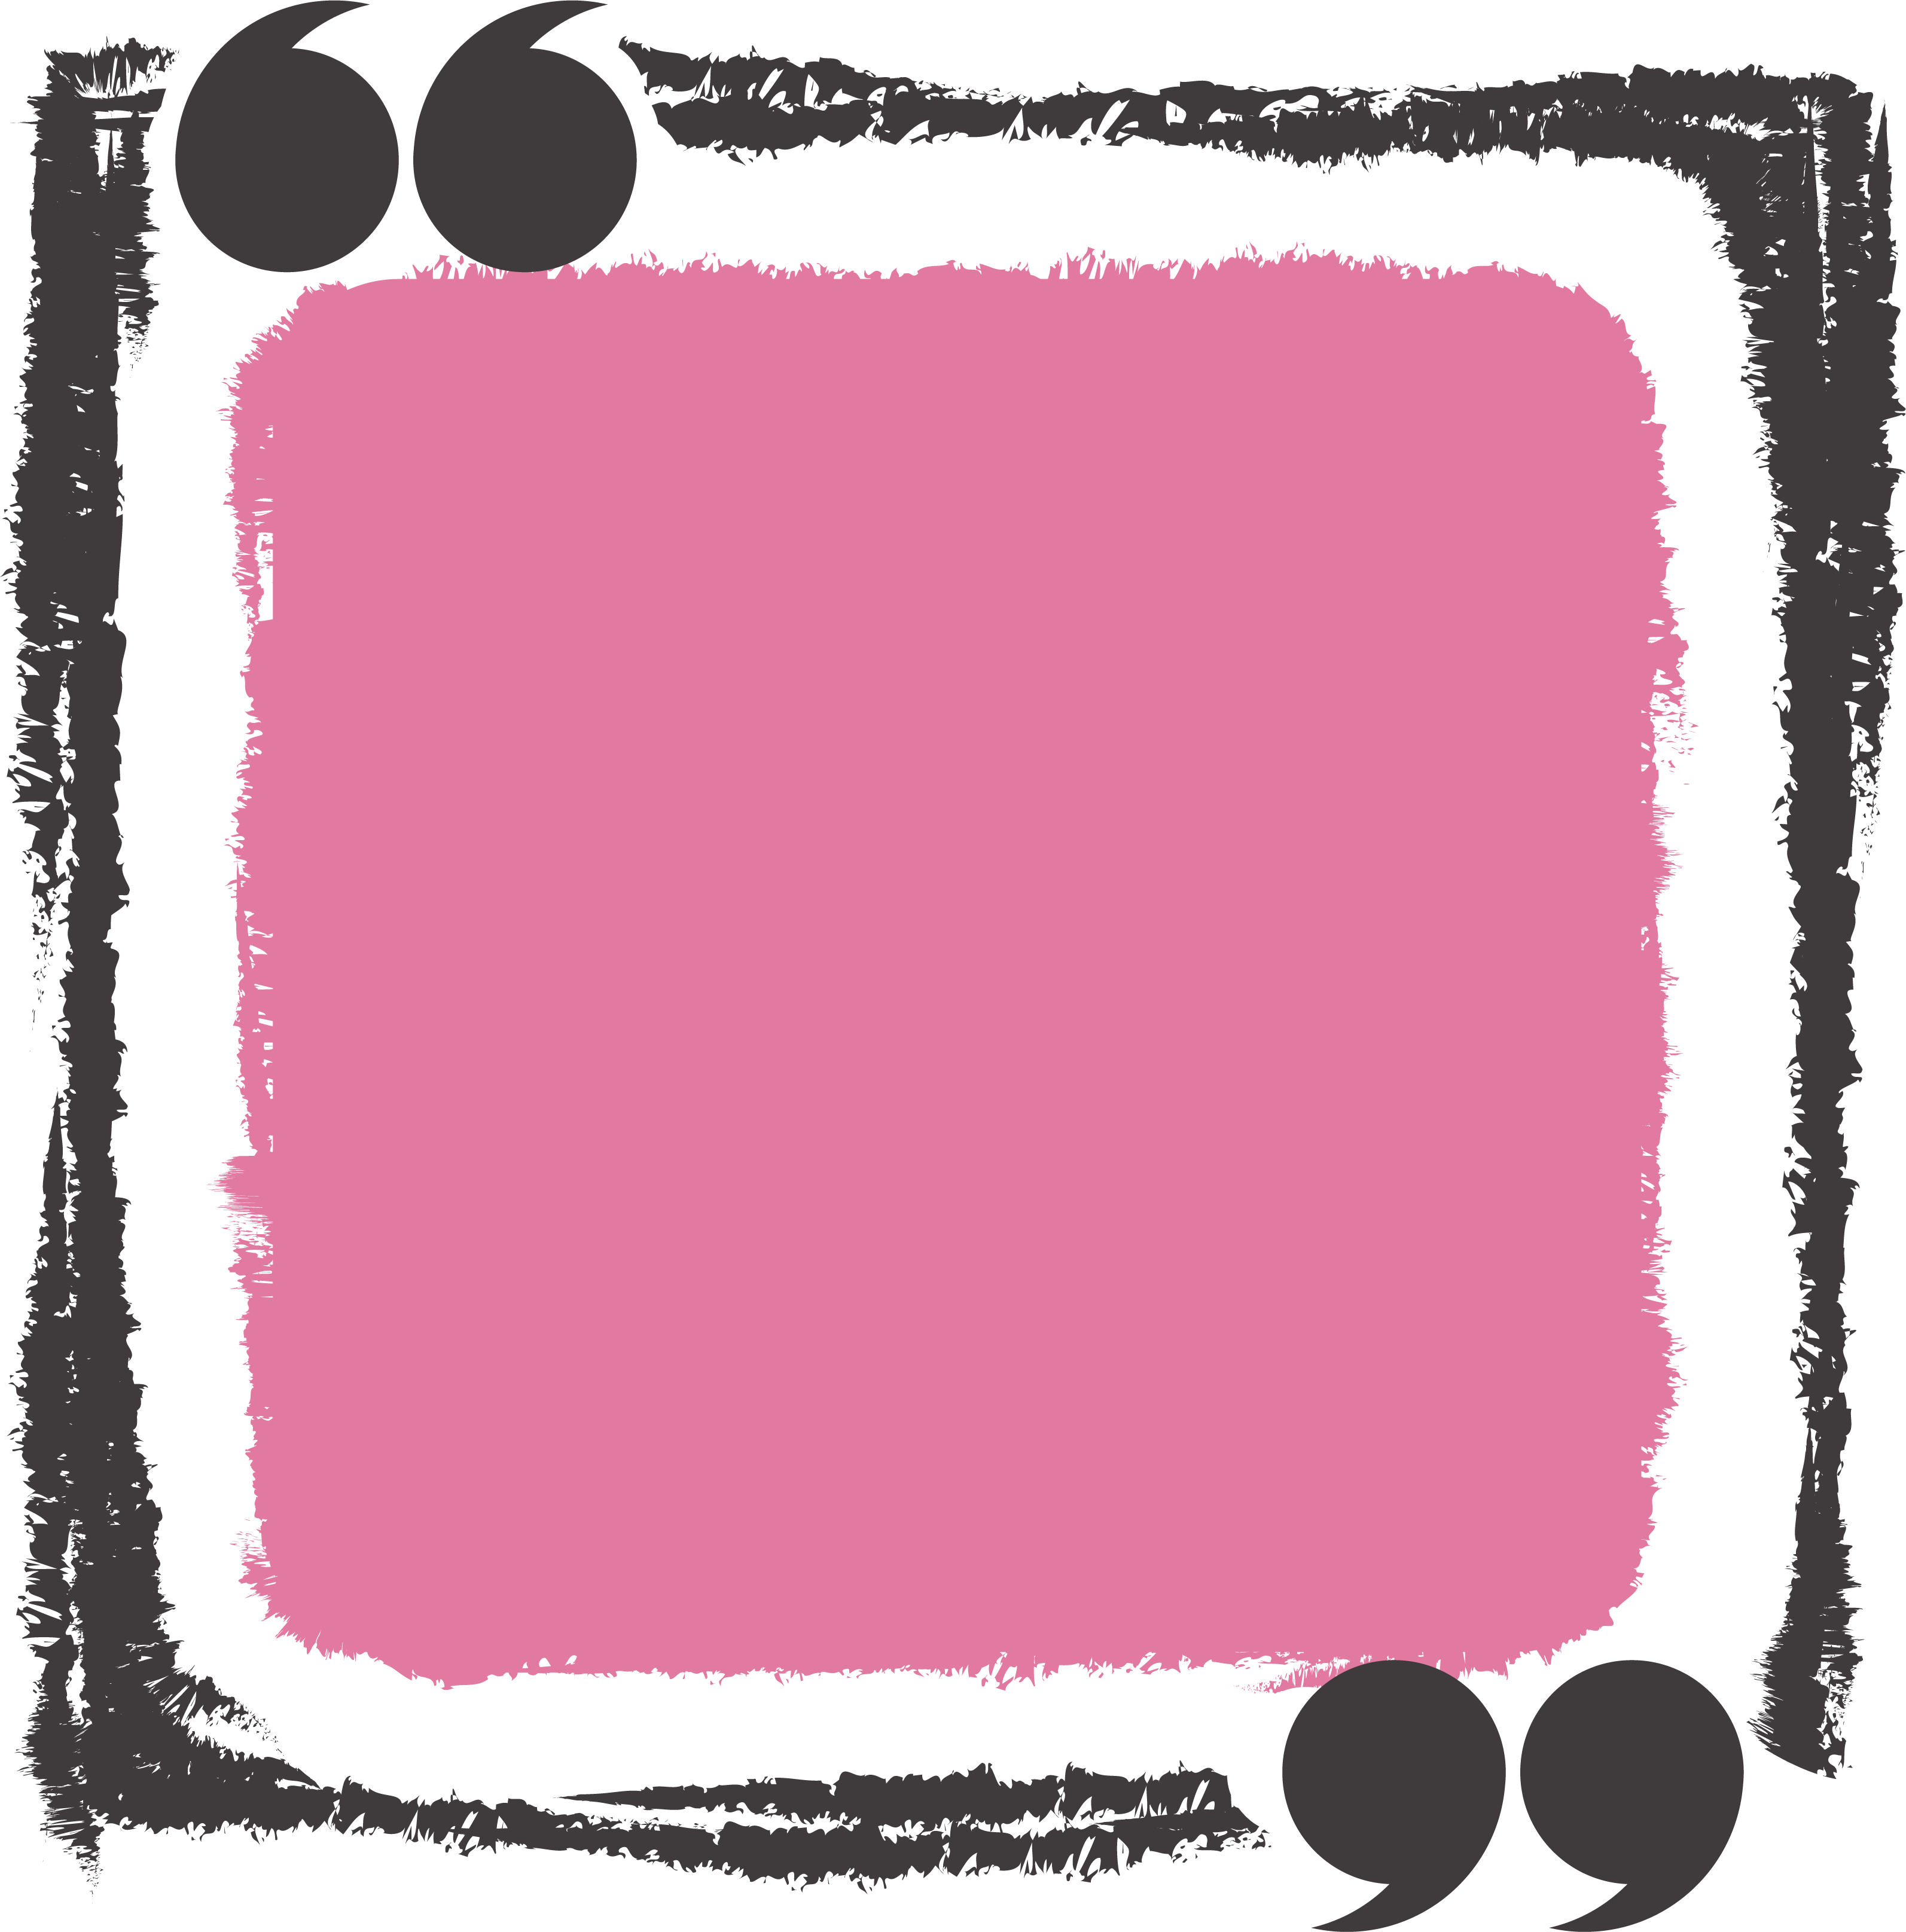 Pink rectangle png. Text box icon hand